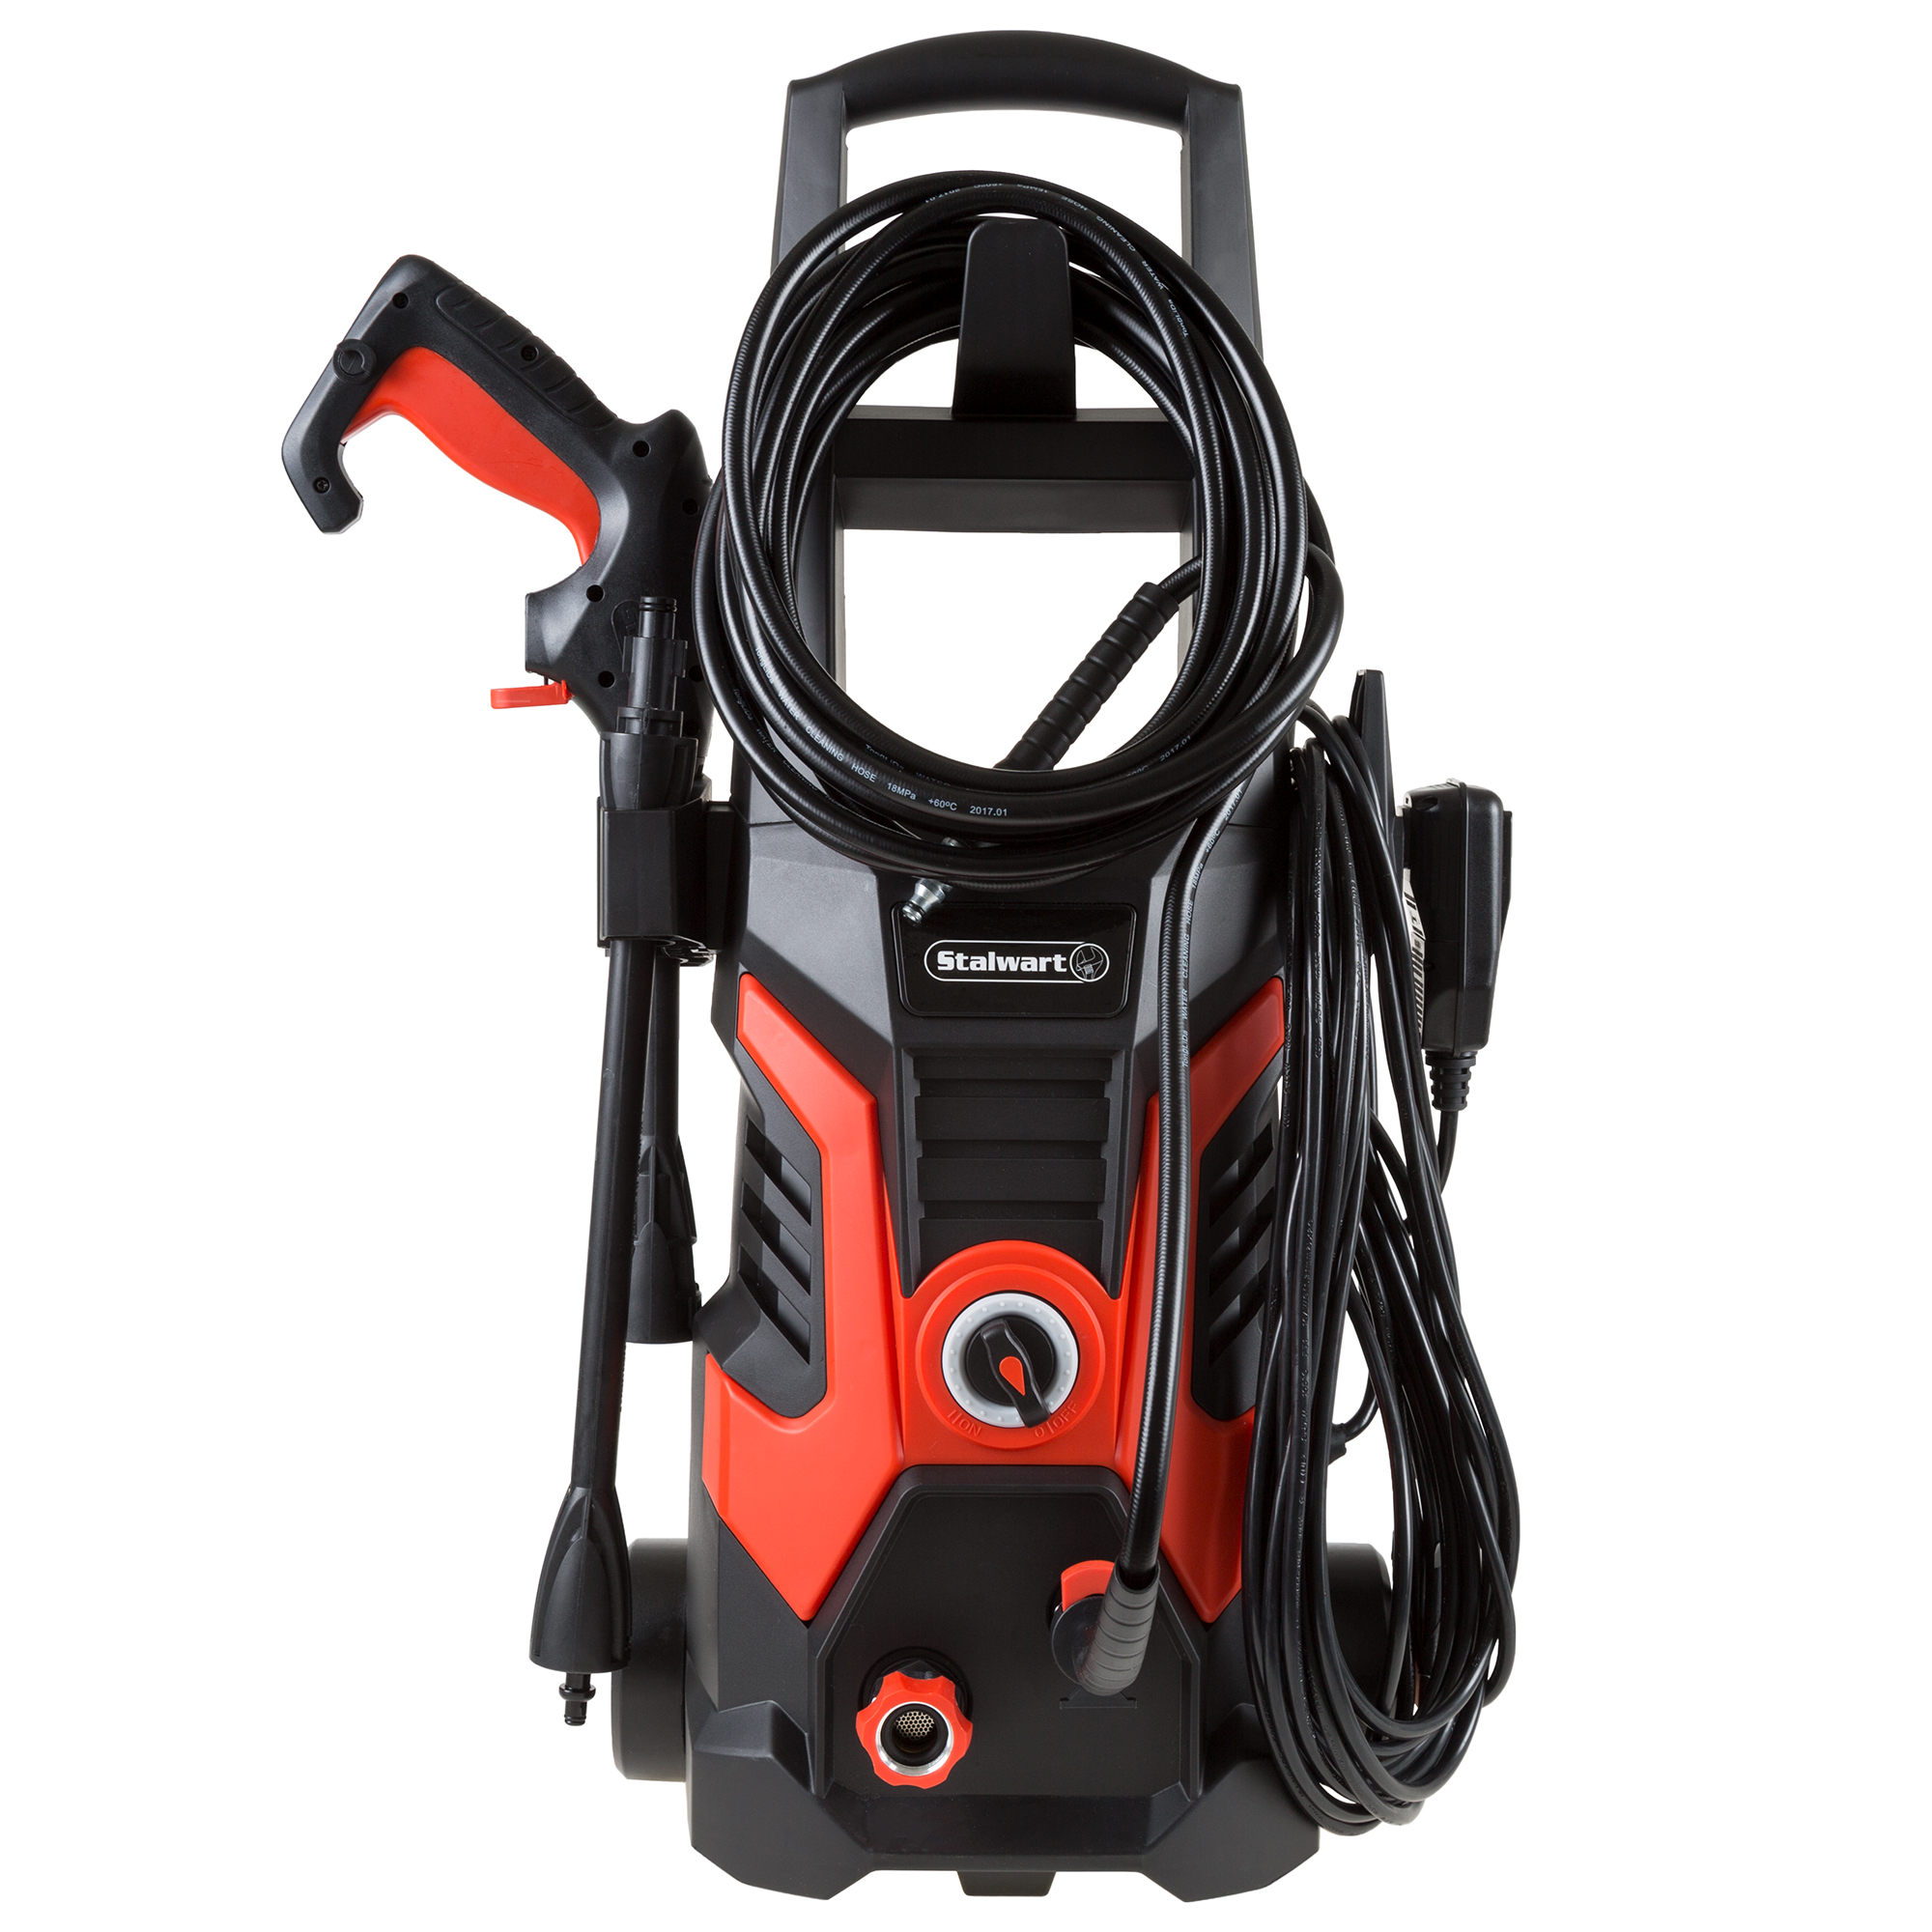 Stalwart 1500 - 2000 PSI, 1.35 - 5GPM Electric Pressure Washer (Power Washer For Cleaning Driveways, Patios, Decks, Cars and More)